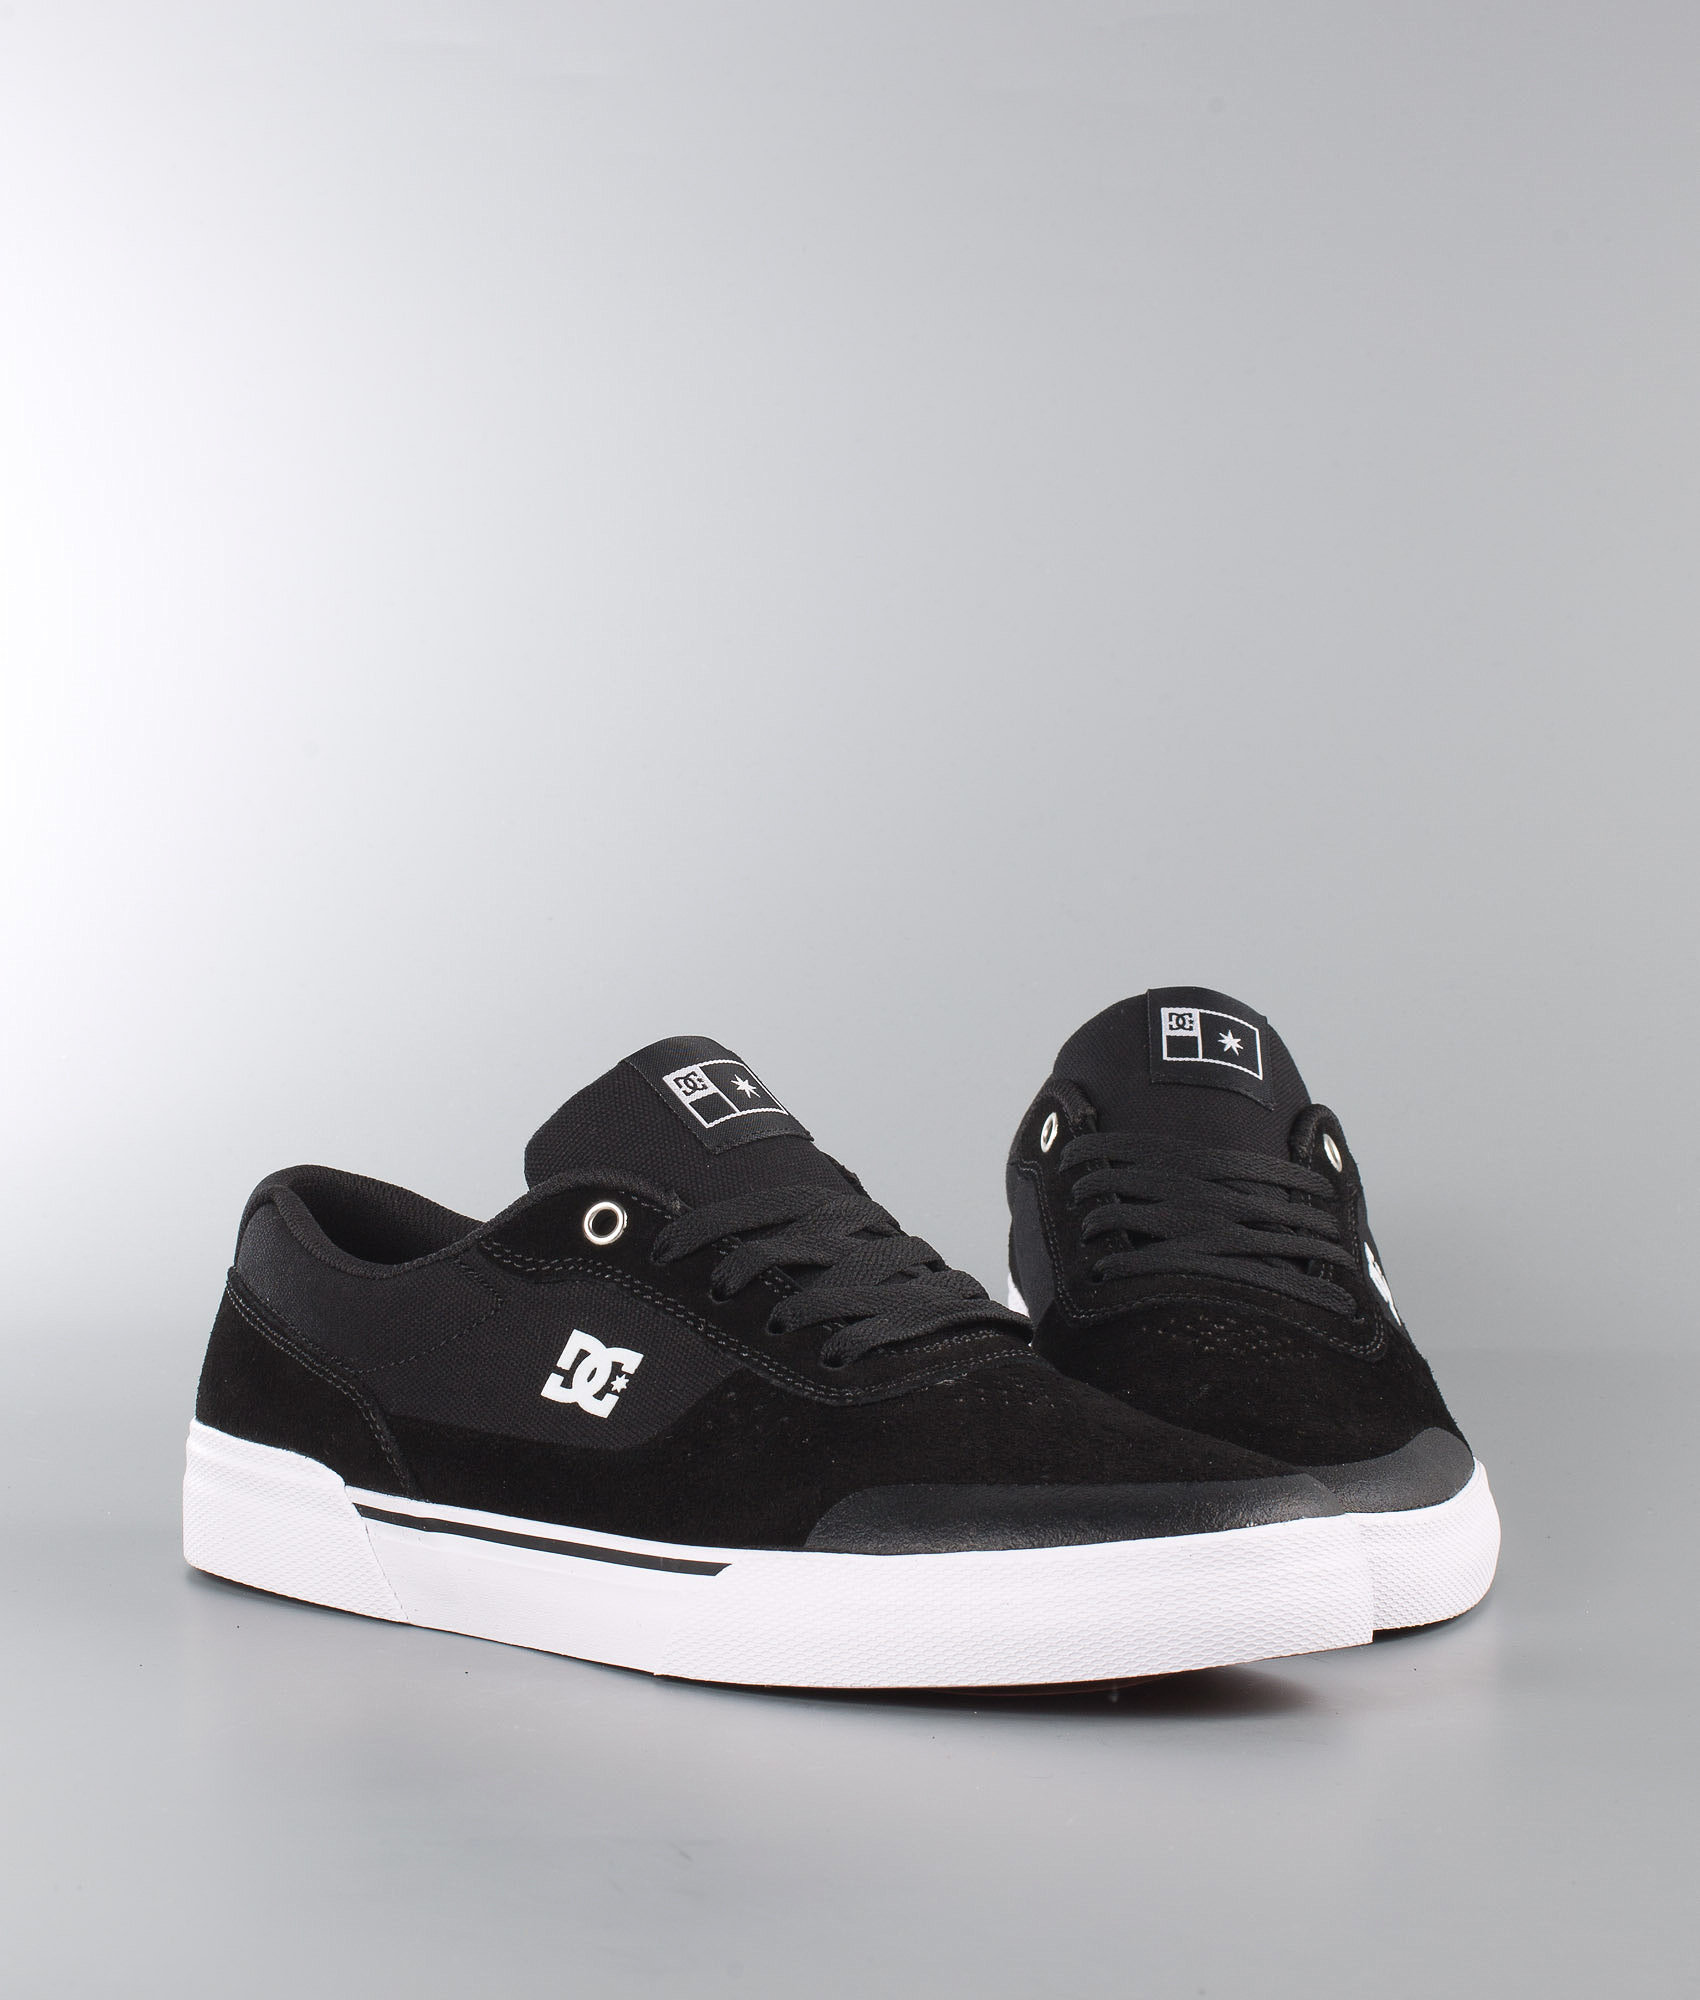 ab935fca11 DC Switch Plus S Shoes Black/White